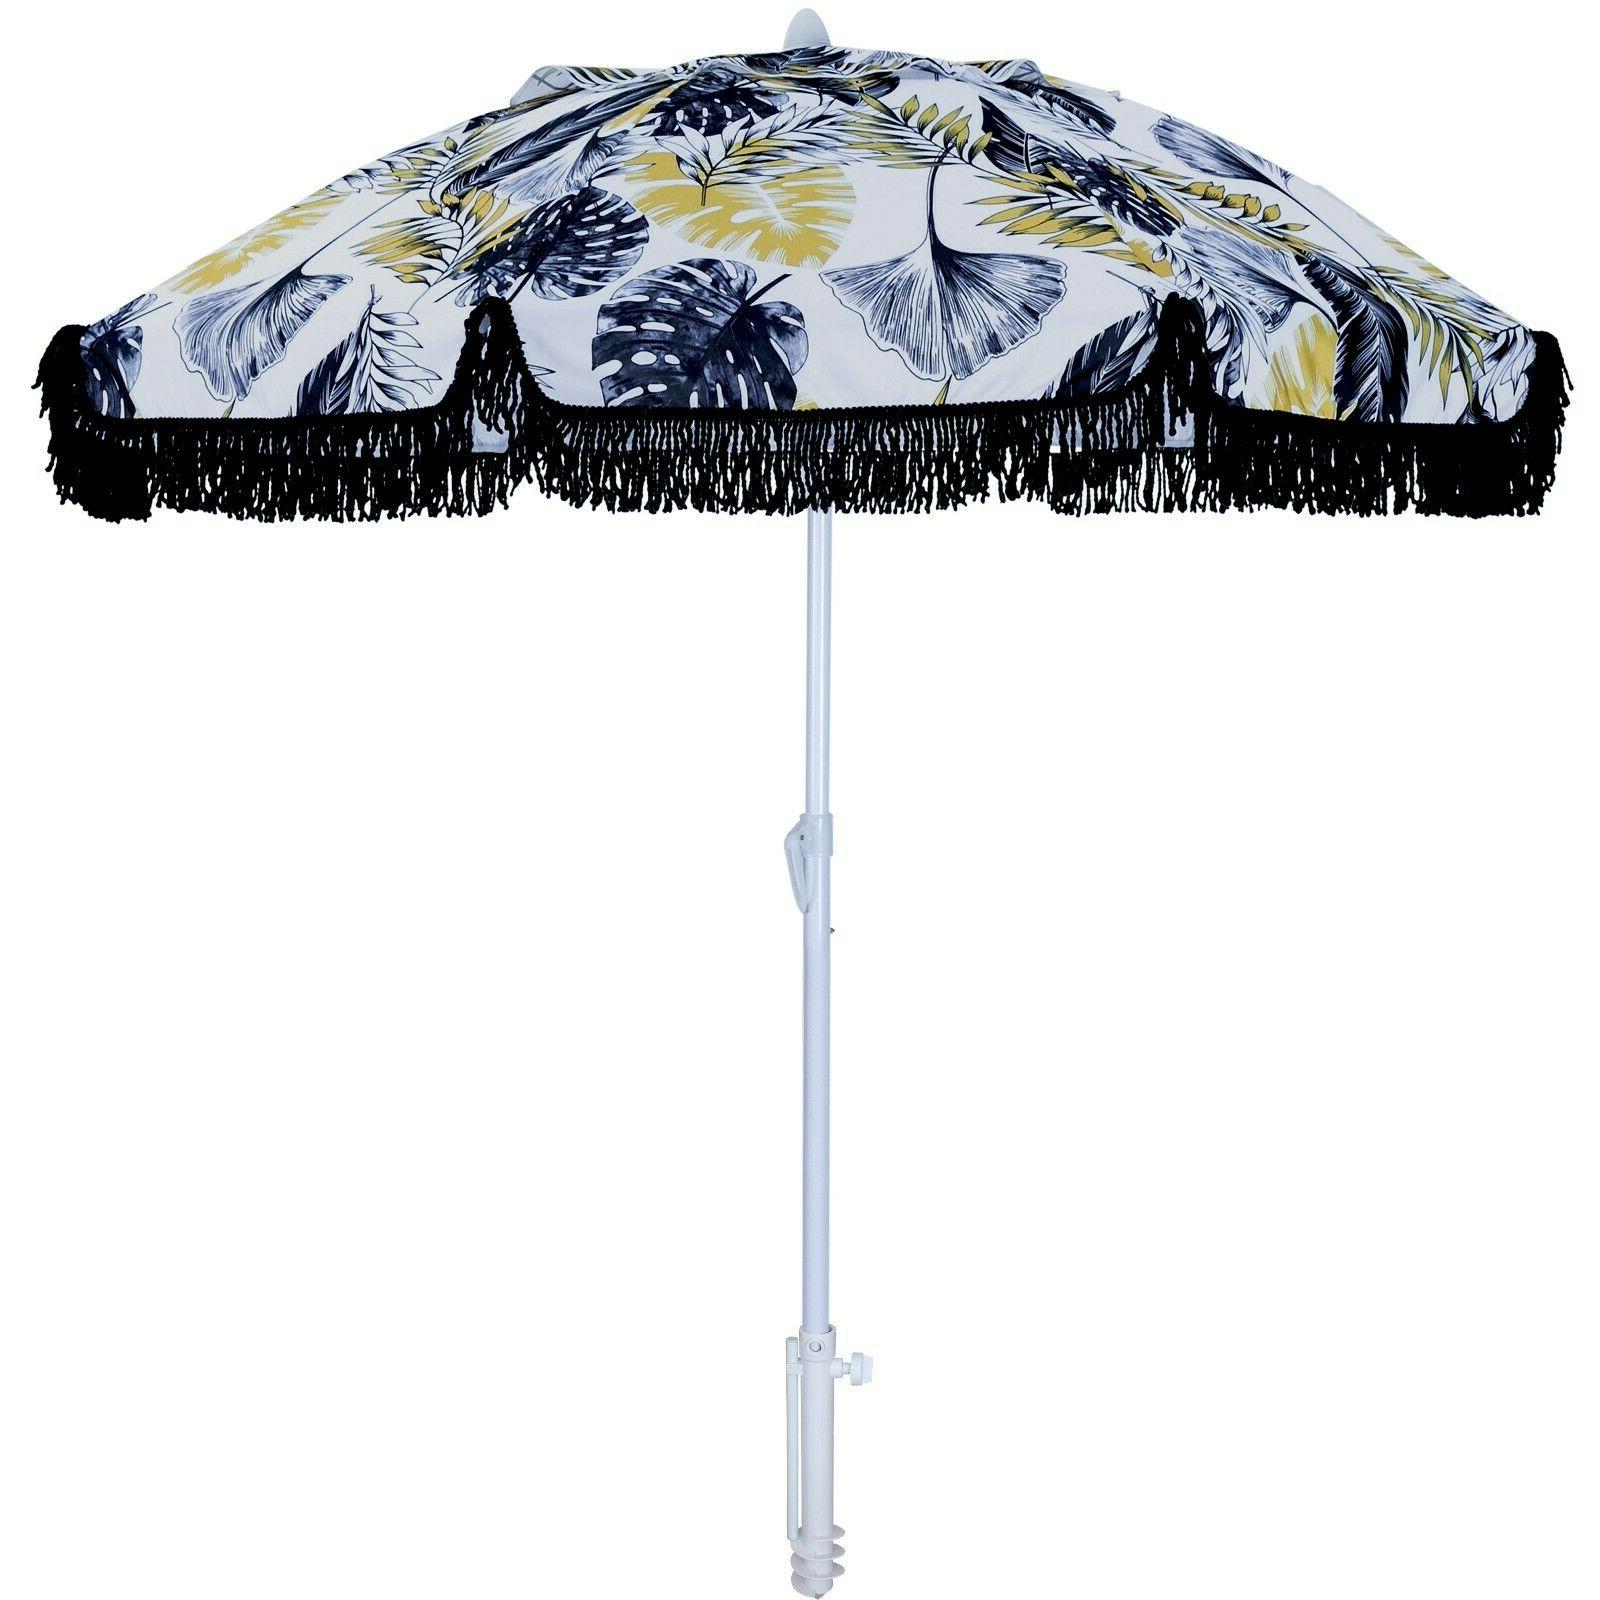 AMMSUN Umbrella with Carrying Case,UPF 50+